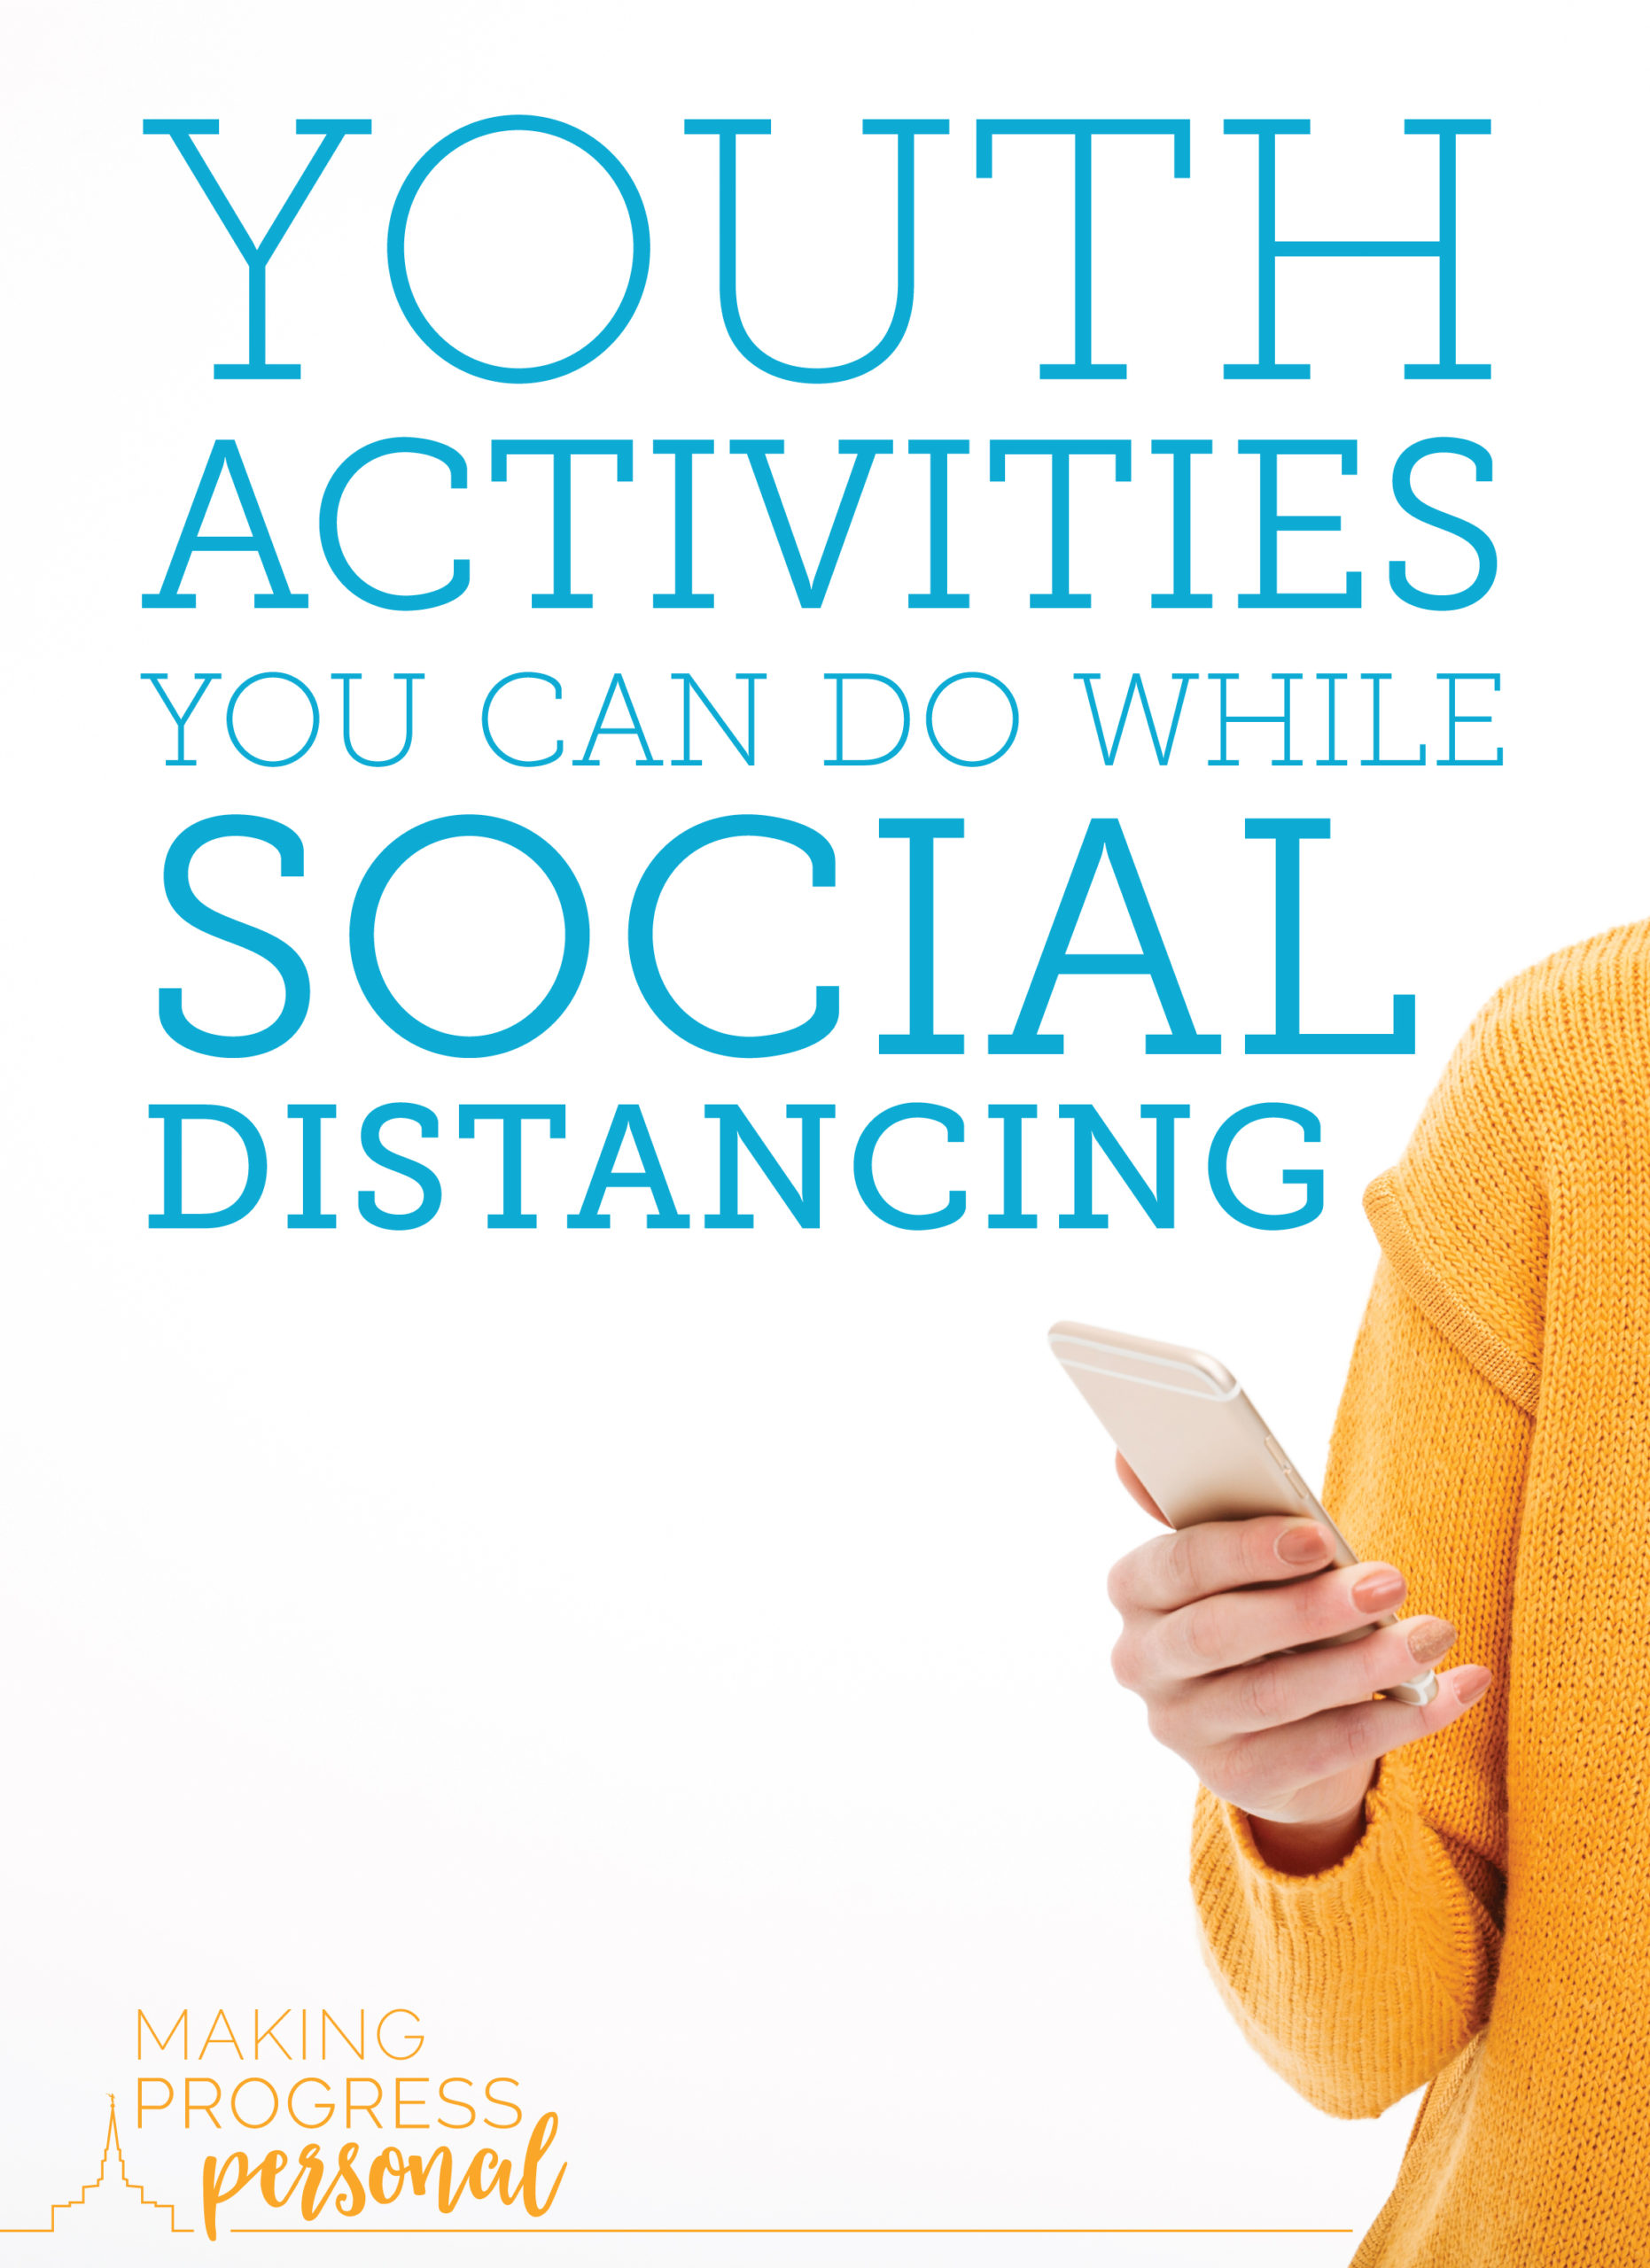 21 youth activities during social distancing over